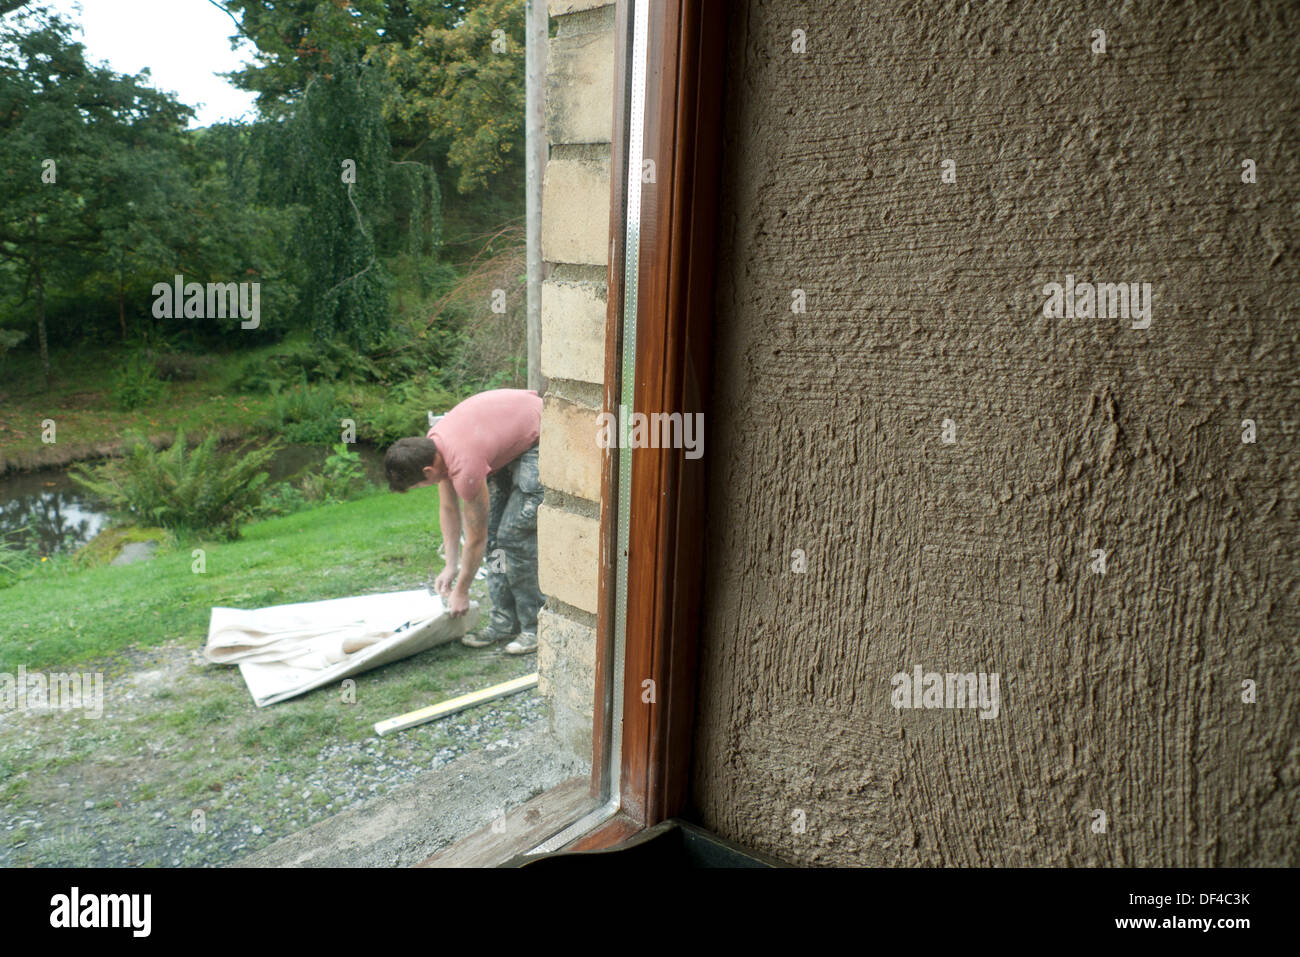 Llanwrda, Wales UK Fri 27th Sept 2013. Close-up detail of the first thick layer of lime hemp plaster on an interior Stock Photo